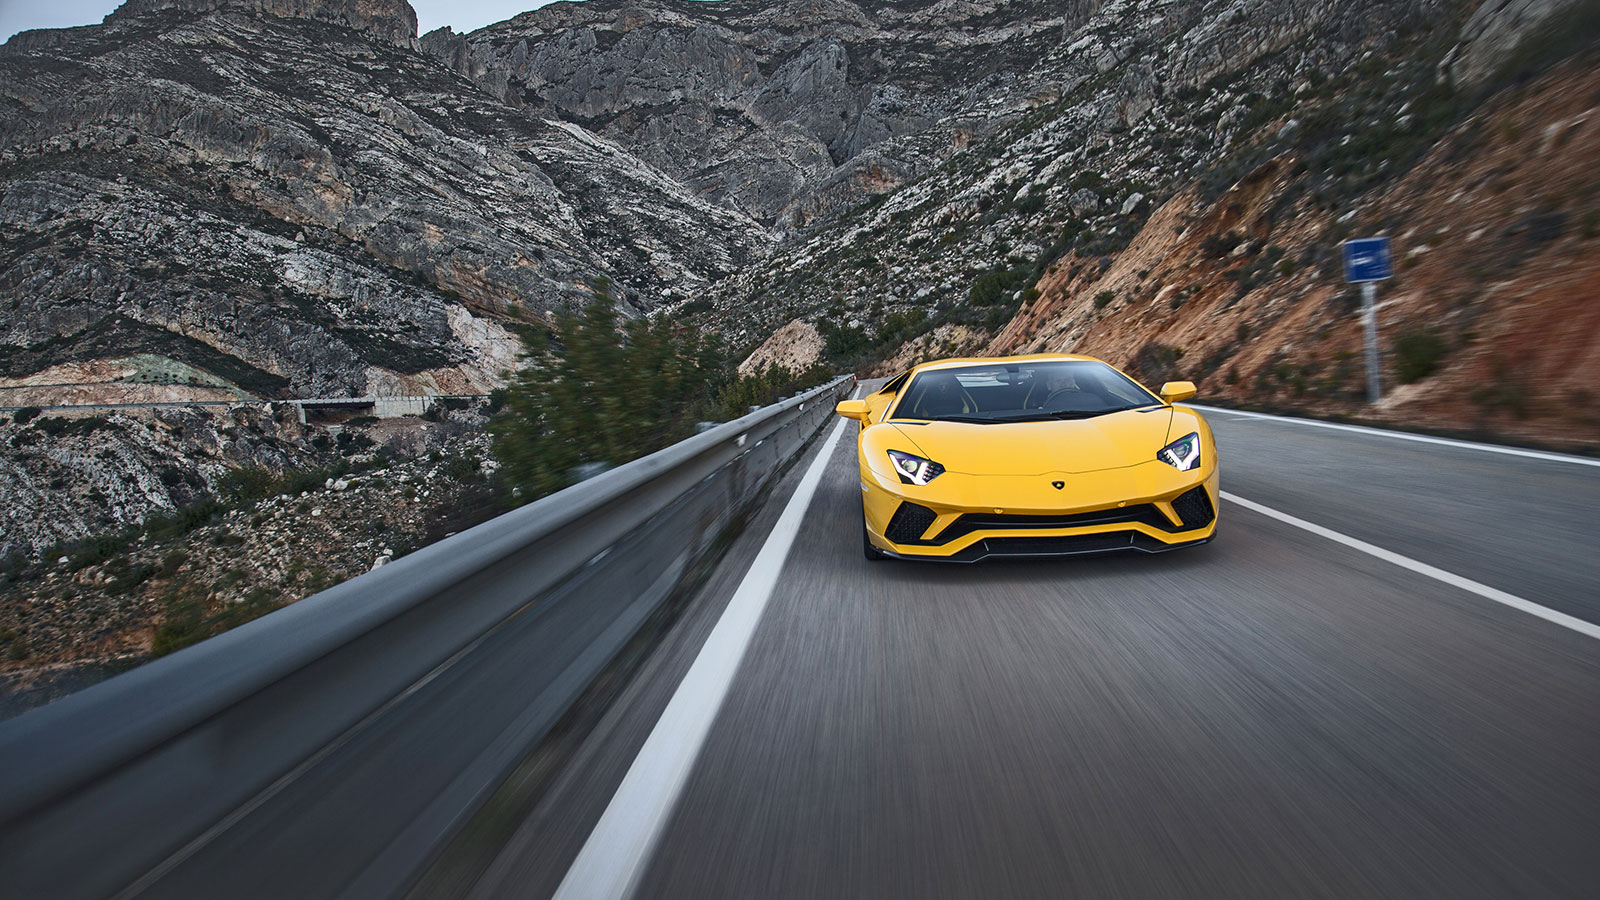 Lamborghini Aventador S Coupe - The Icon Reborn image 29